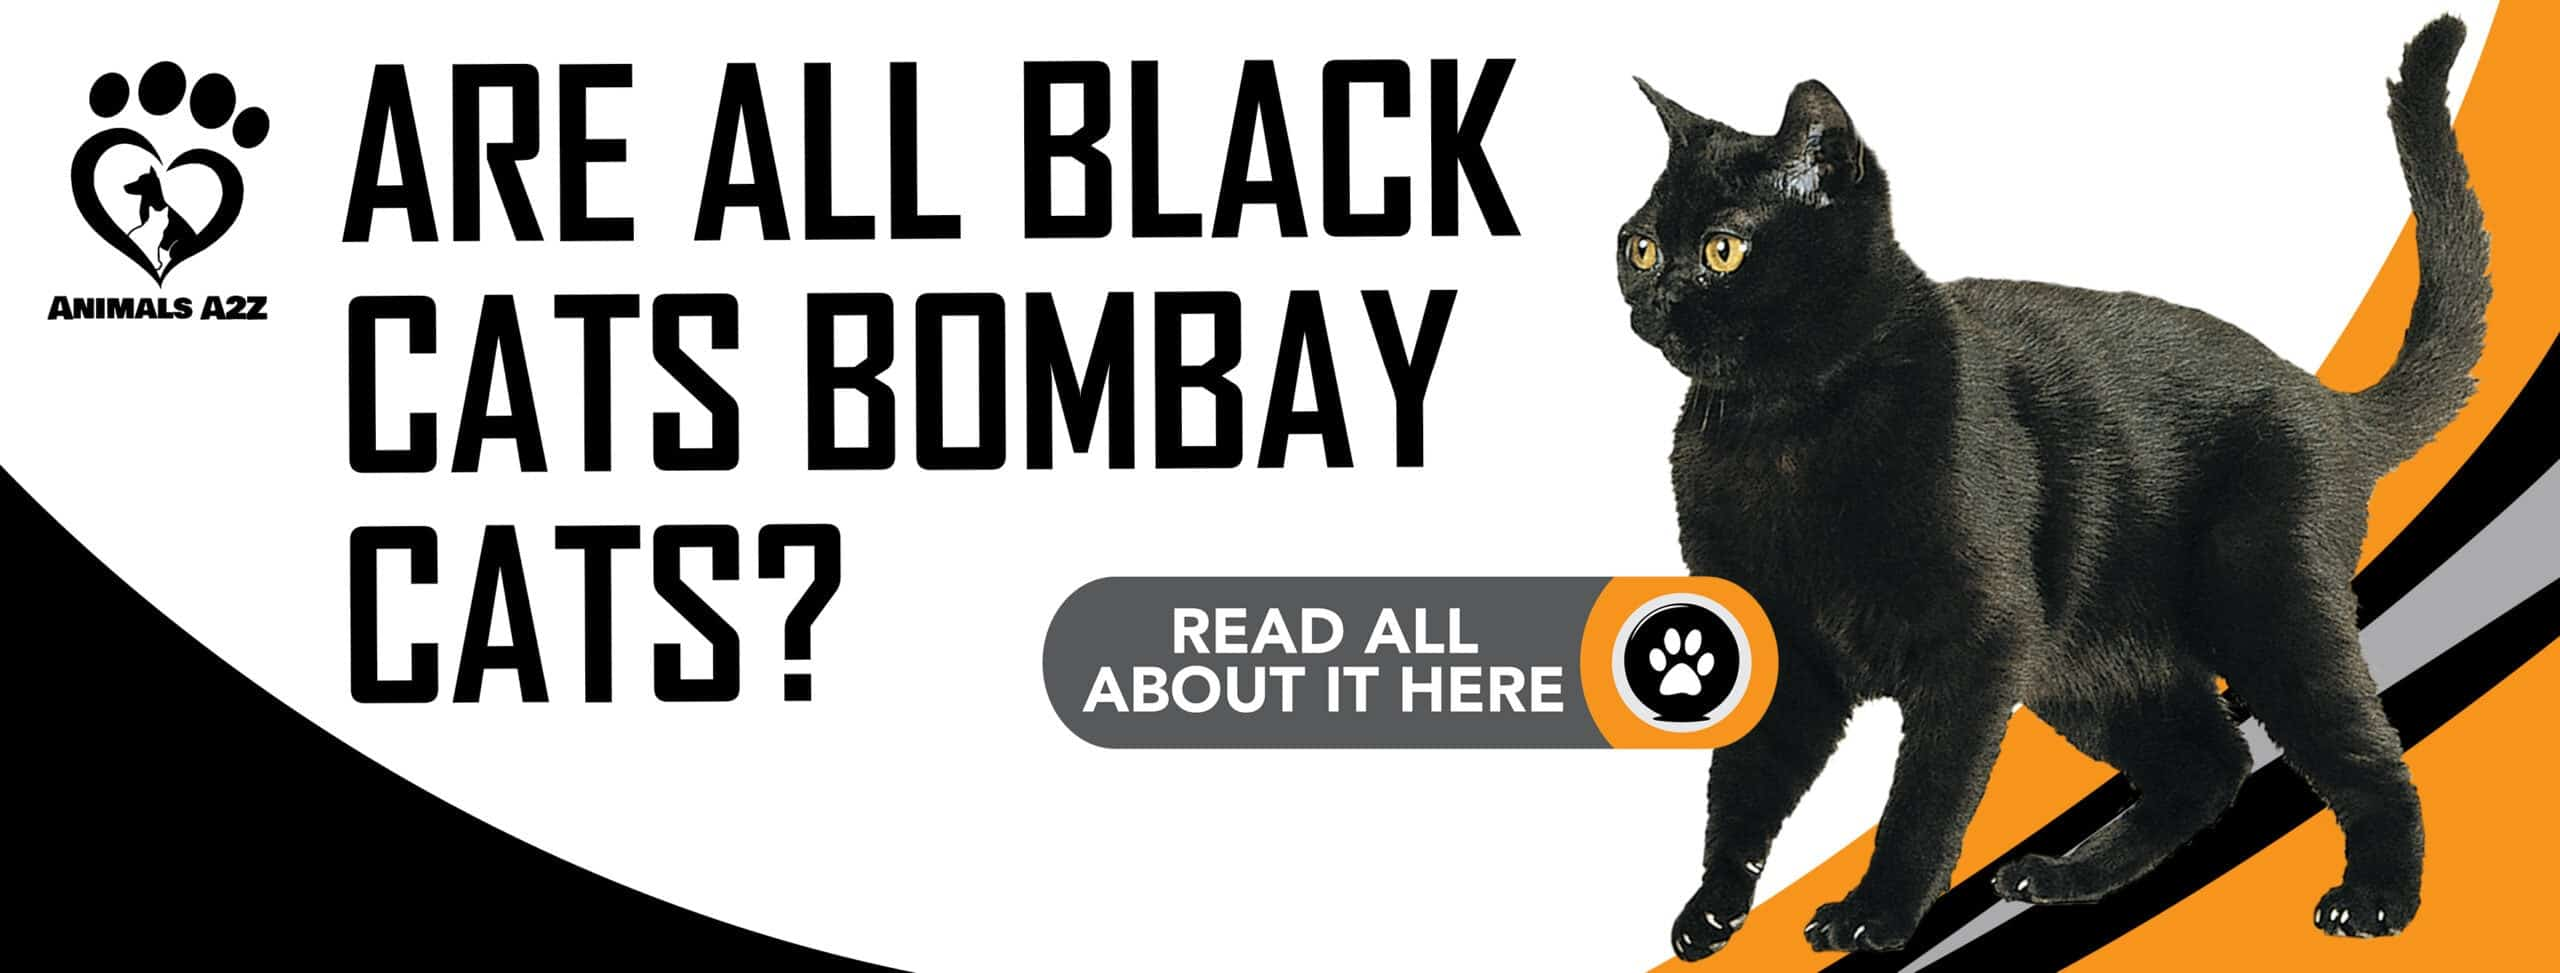 Are all black cats Bombay cats